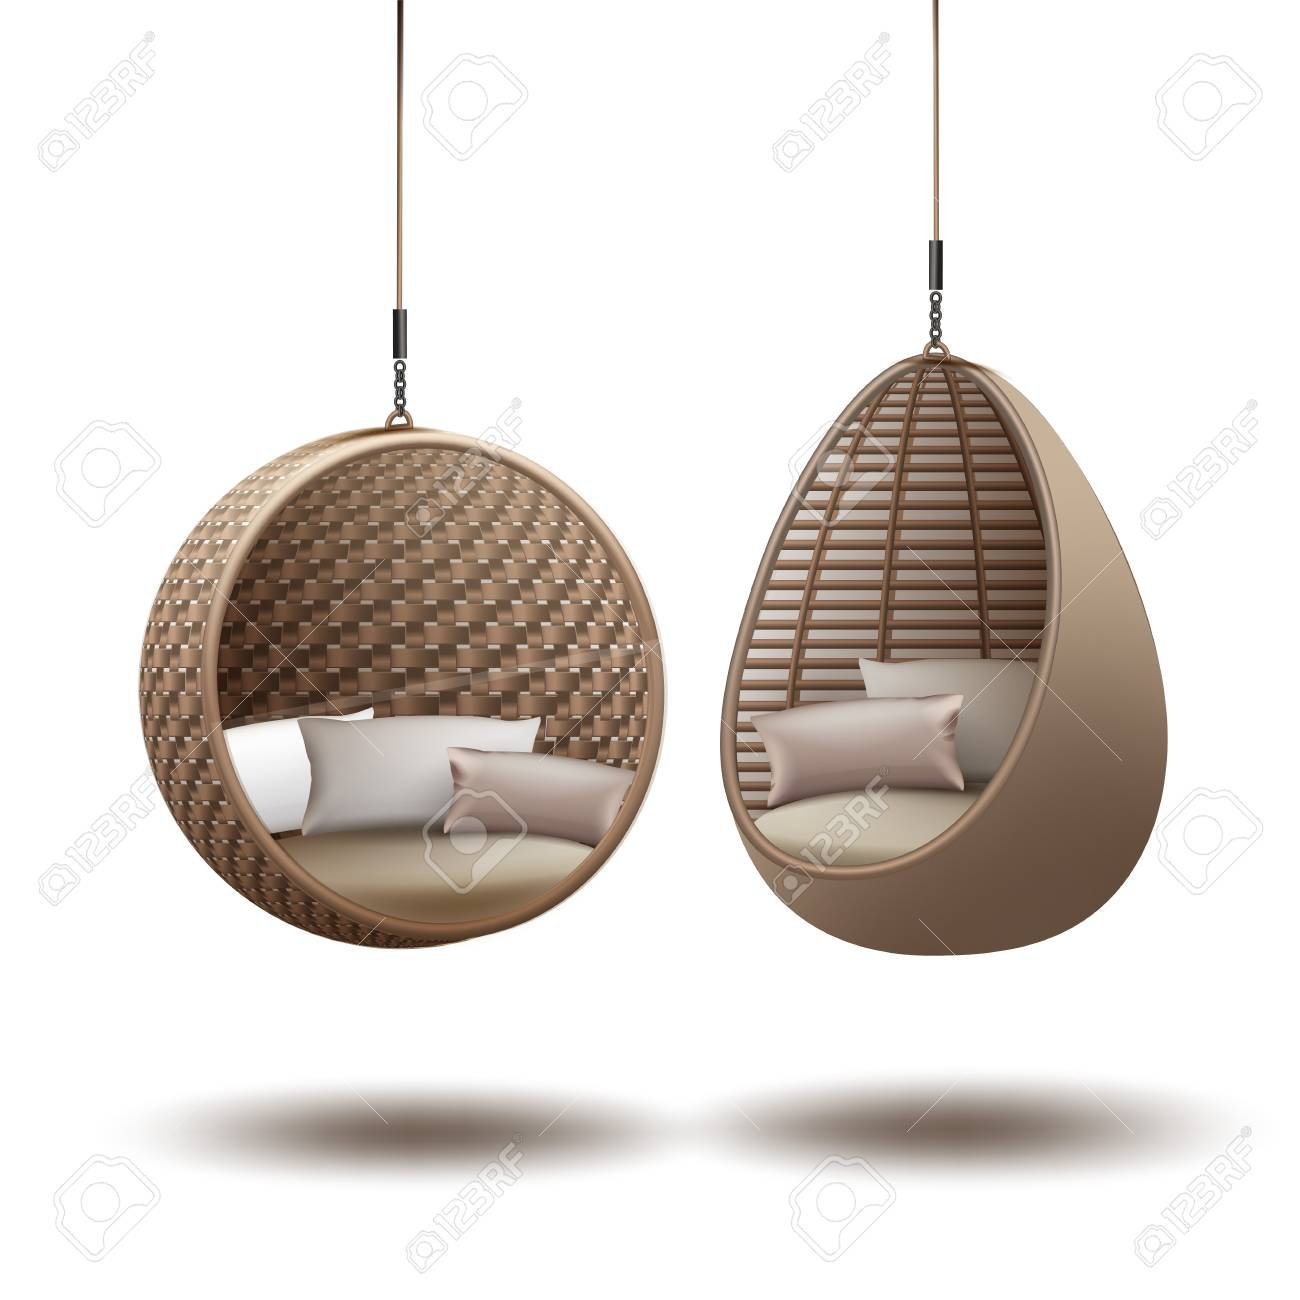 hanging chair swing adirondack templates wicker chairs on a chain with cushions vector white background